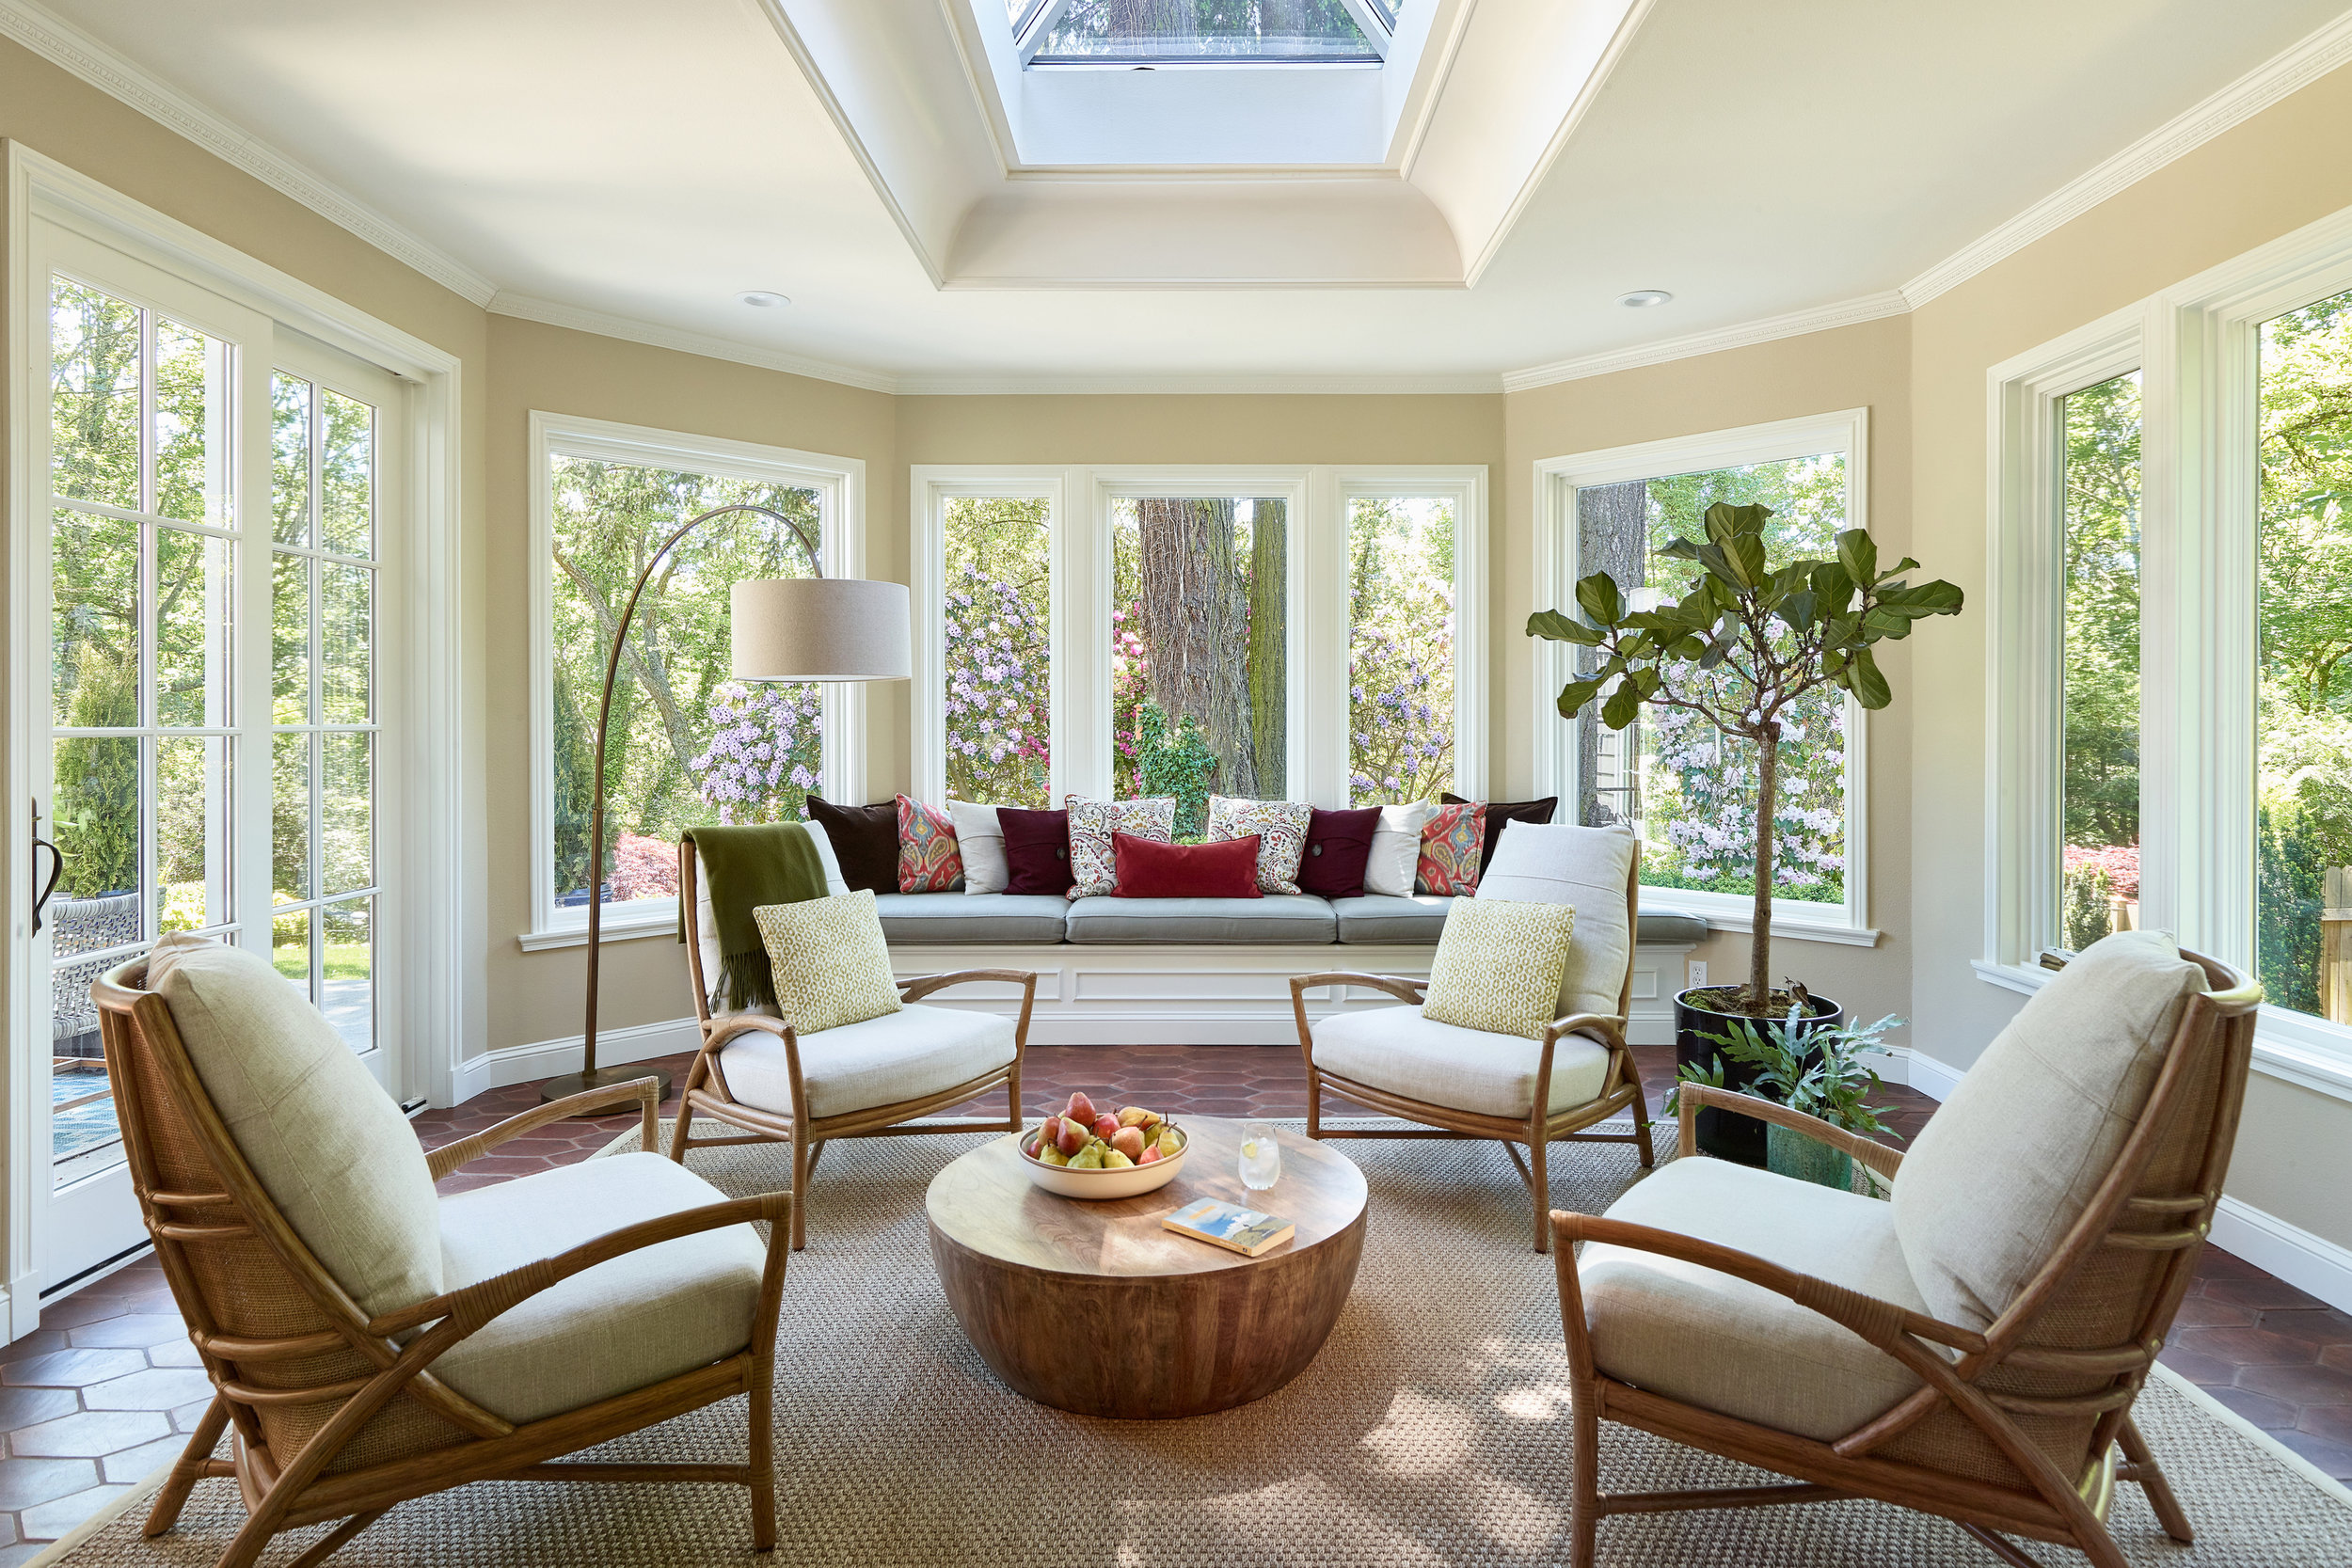 Sunroom interior design by Jenni Leasia Interior Design in Portland